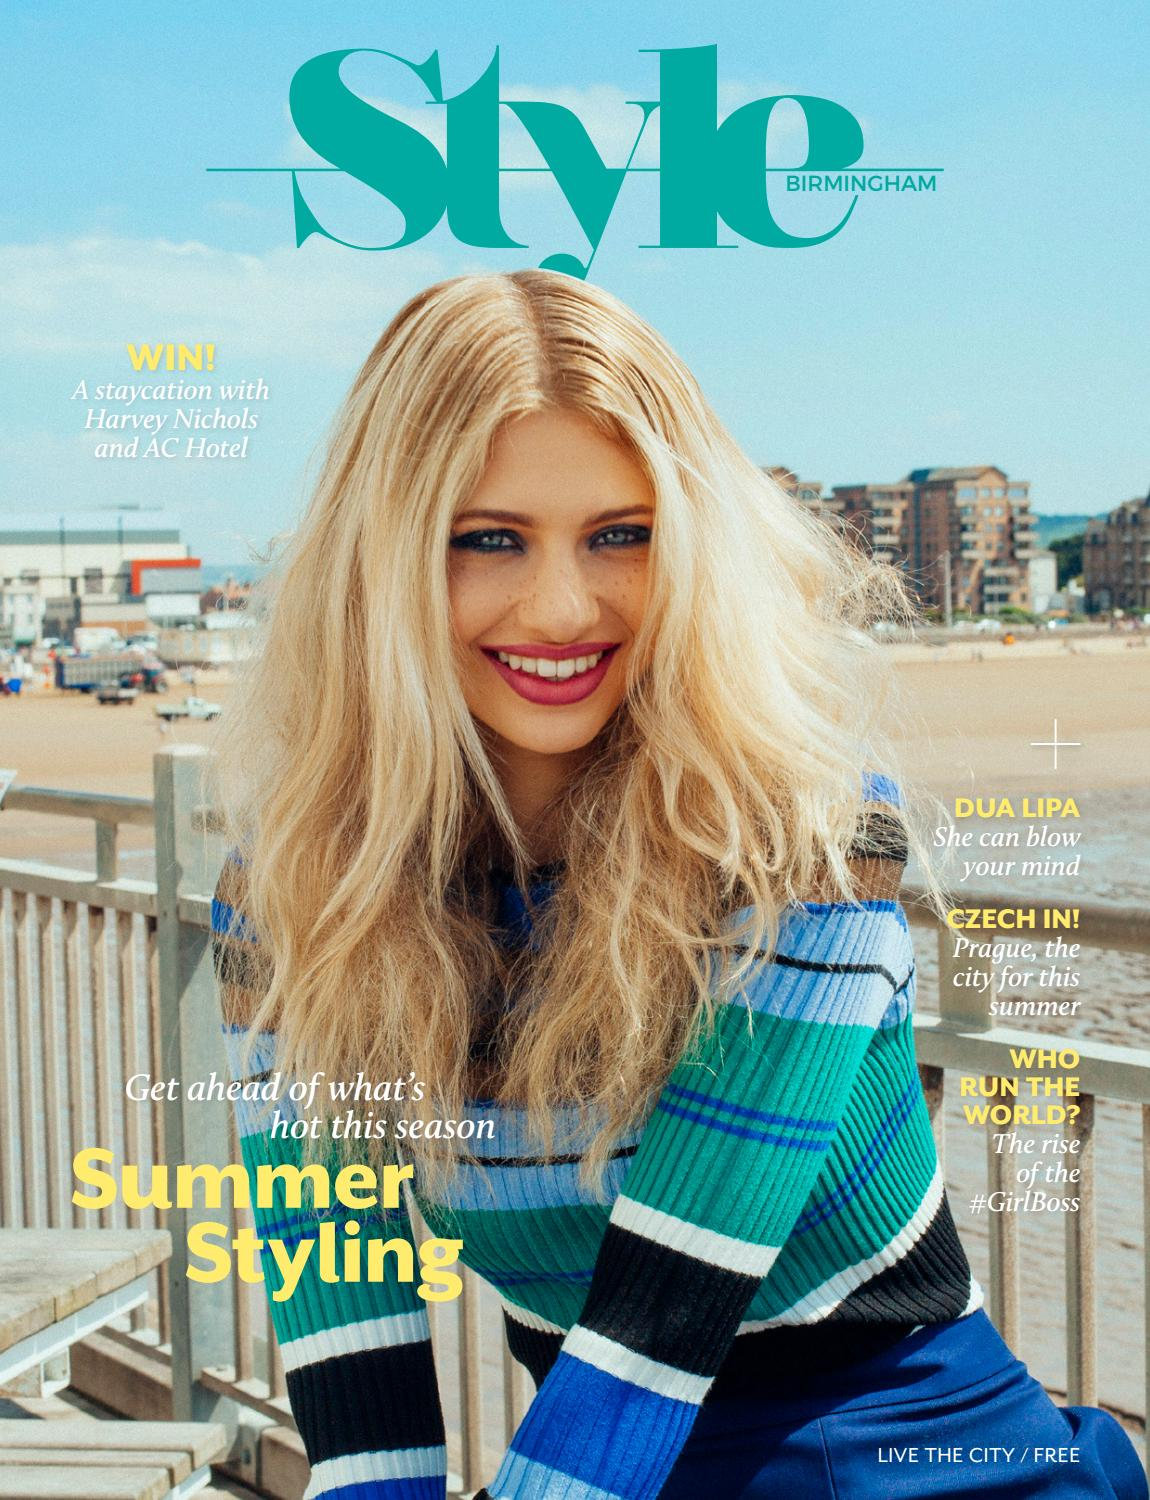 6a7bbf60d3d Style Birmingham Issue 54 by RileyRaven - issuu